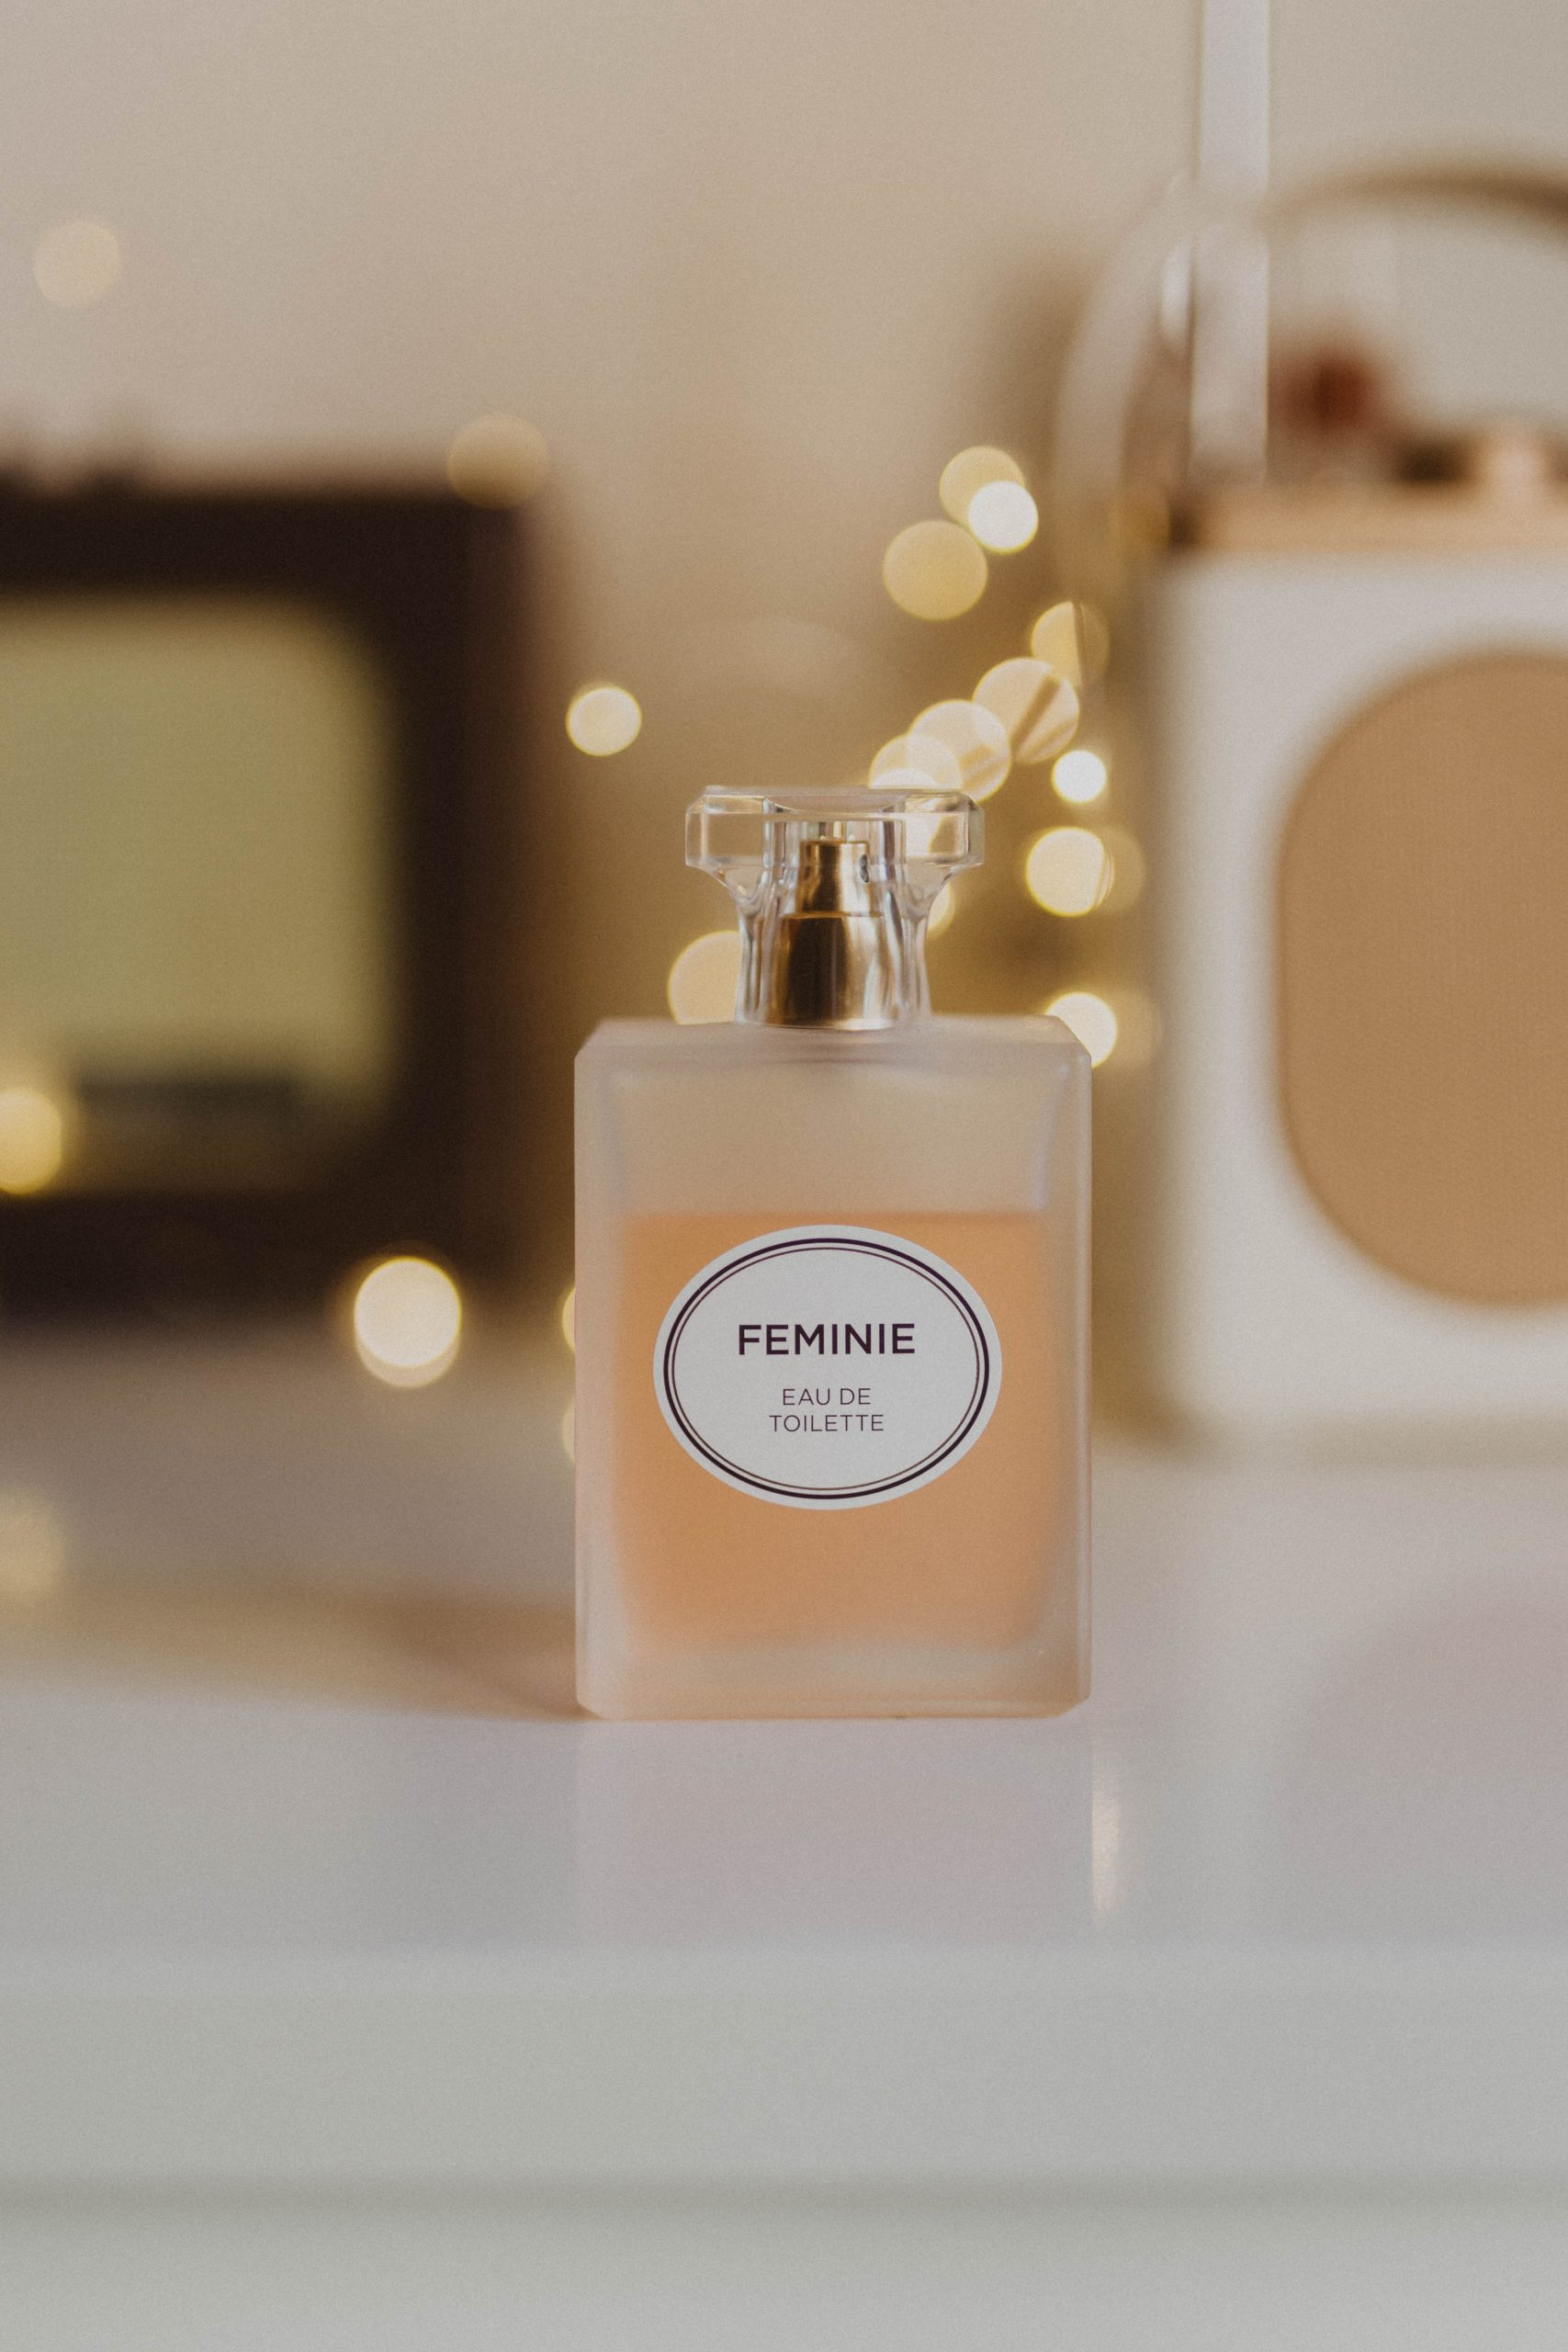 Chanel Coco Mademoiselle Dupe, Best Chanel Dupes, Aldi Chanel Dupe, Supermarket perfume dupes, Lacura Feminie, Lacura perfumes, Chanel cheaper, Cheaper versions of Chanel perfumes, Aldi Feminie,